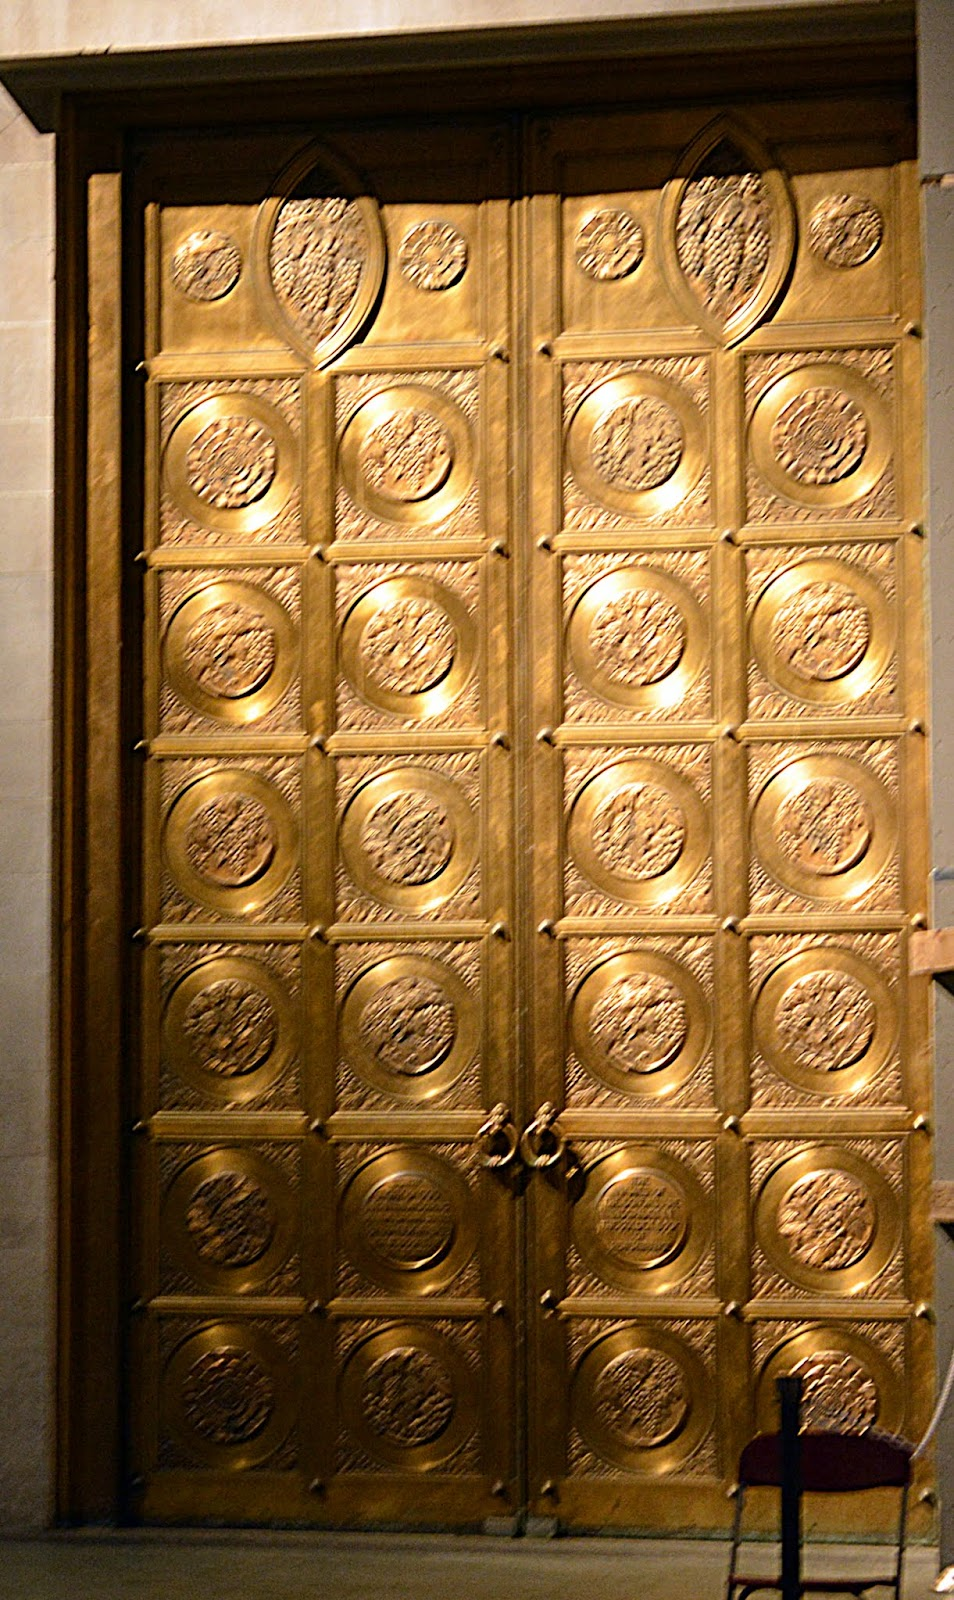 One of the  Golden Doors  -- bronze front doors of the Cathedral seen from the inside. Cast by Barbedienne of Paris who also cast the Statue of Liberty. & Mille Fiori Favoriti: The Cathedral Church of St. John the Divine ...